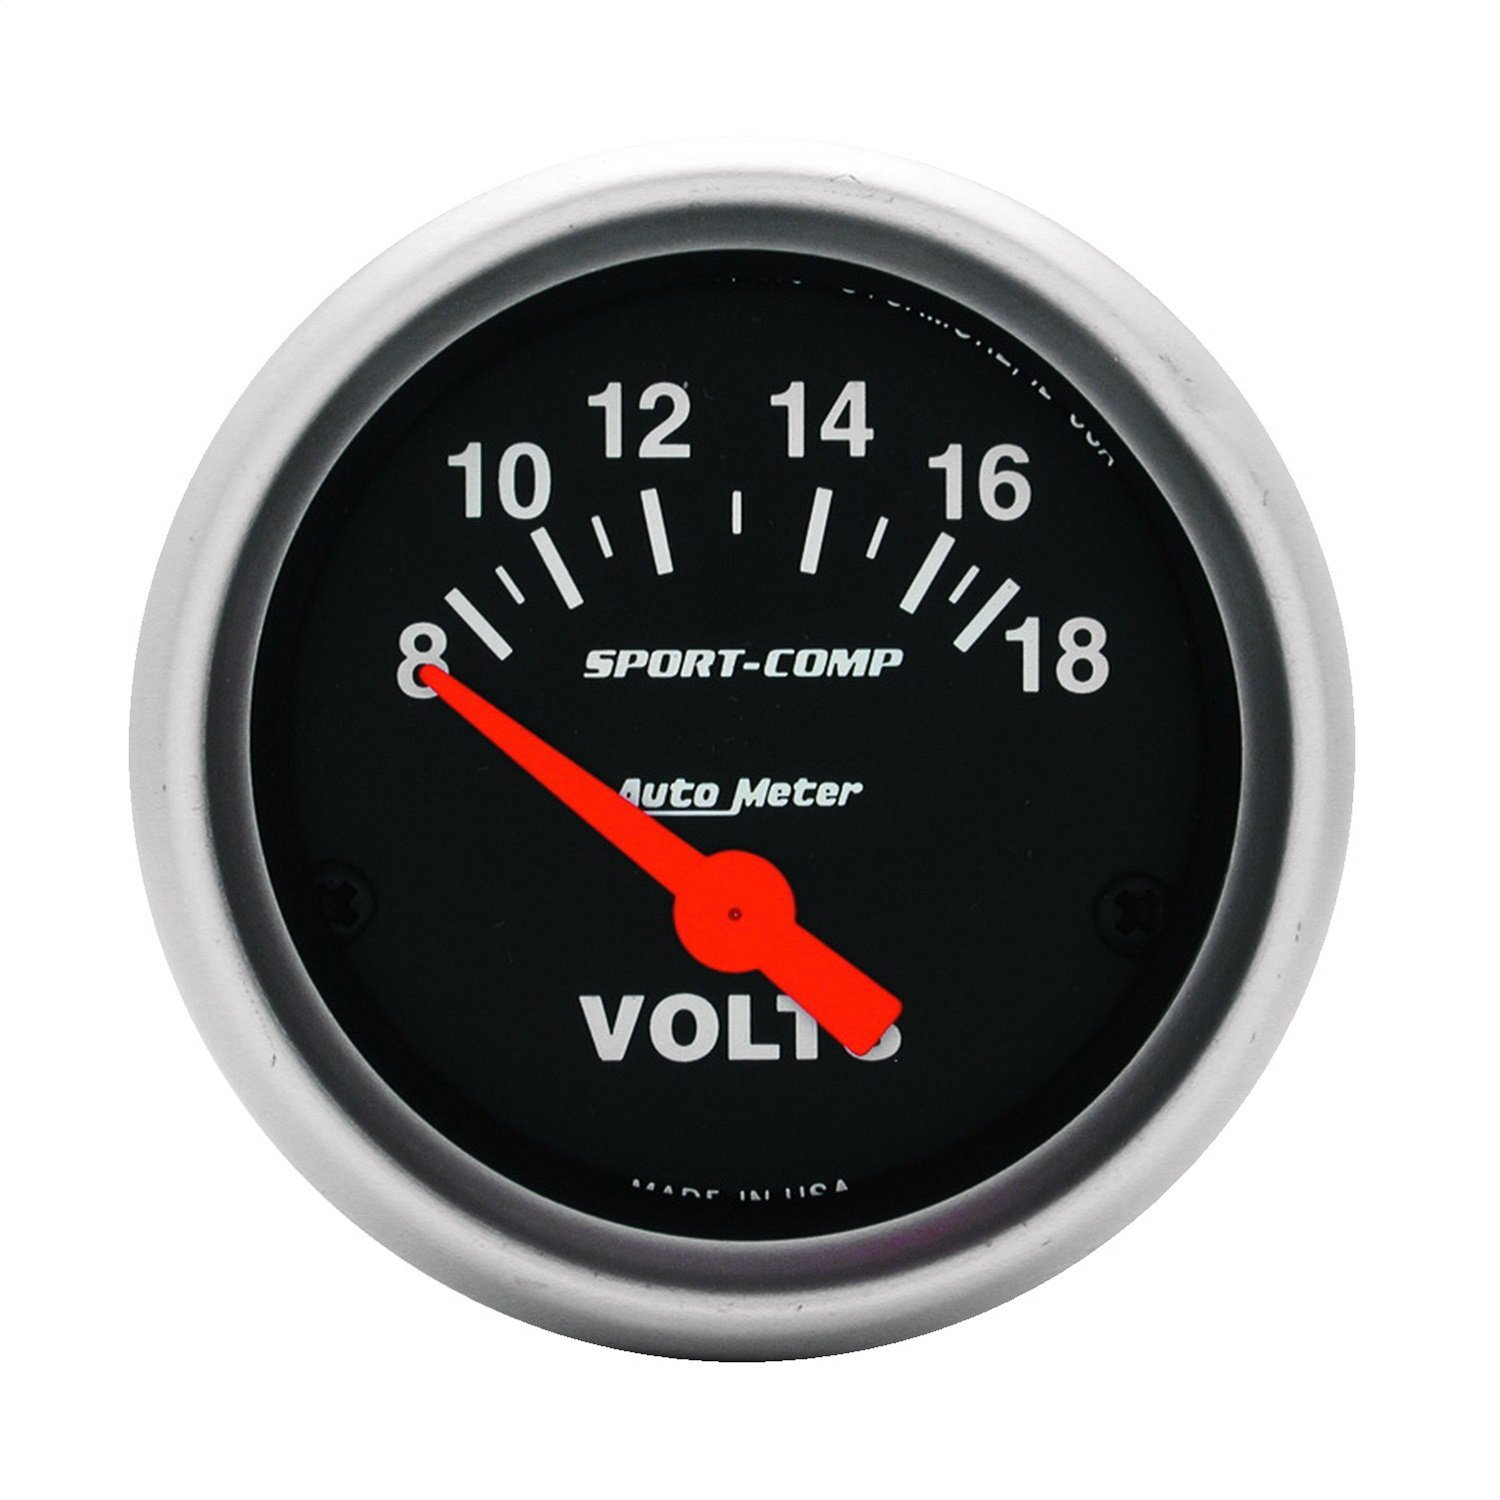 Best Rated In Automotive Performance Voltmeter Gauges Helpful Home 73 Cuda Gauge Wiring Auto Meter 3391 Sport Comp Electric Product Image